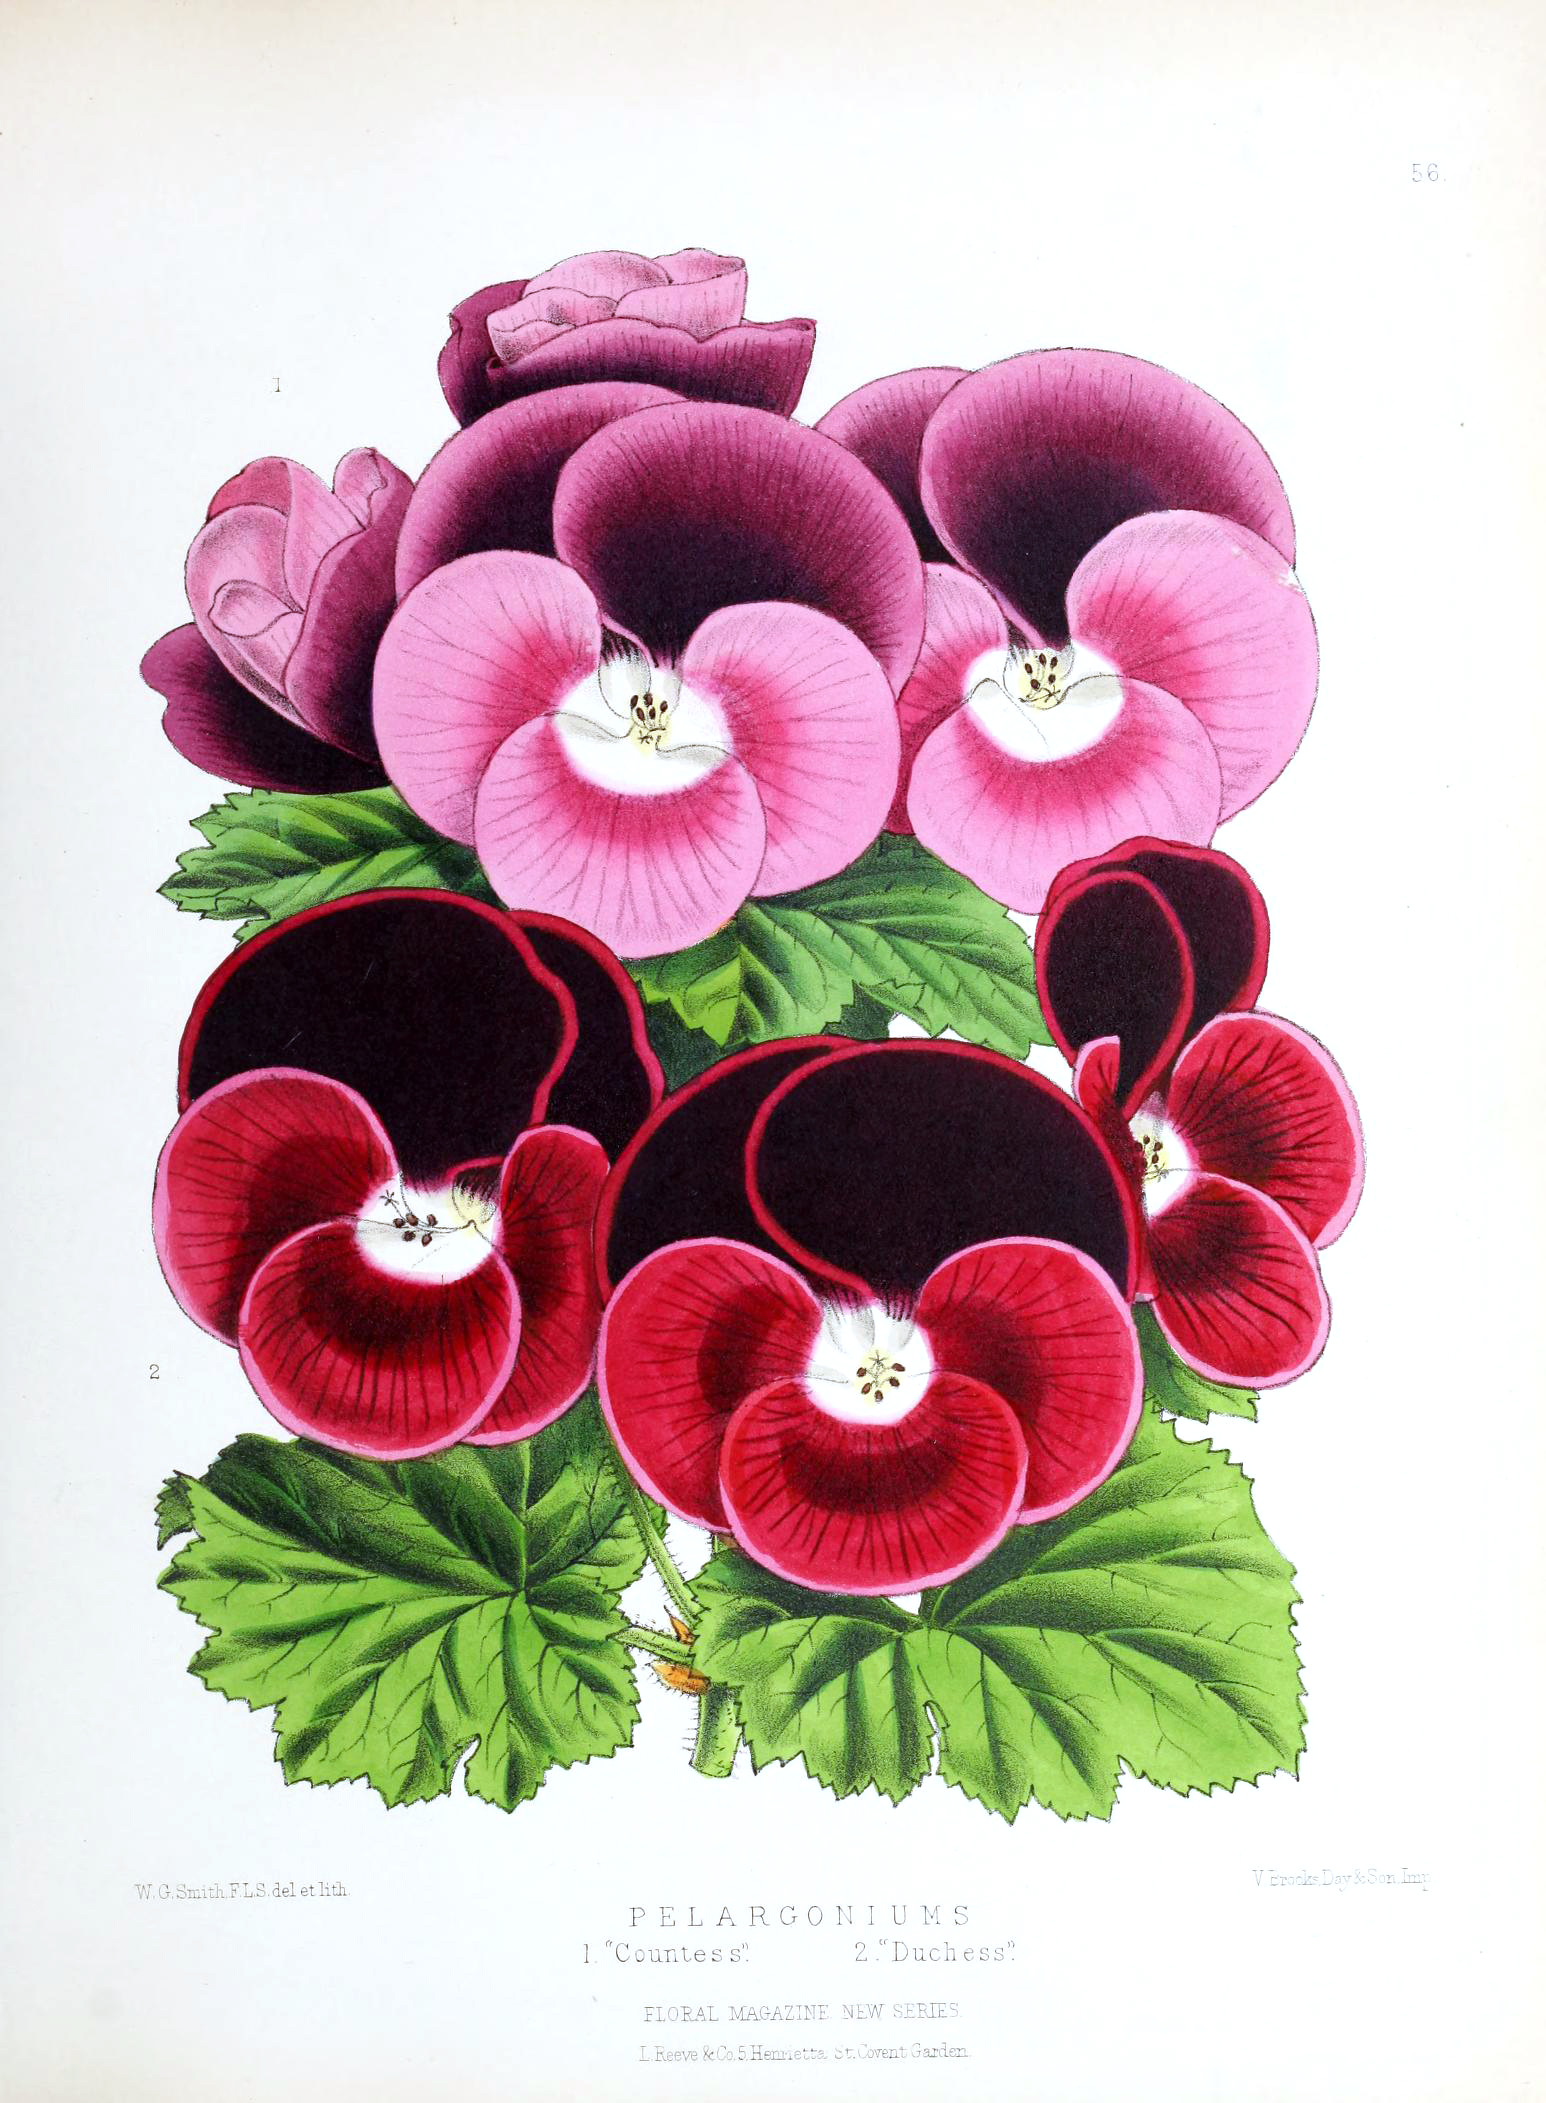 Vintage Botanical Prints - 53 in a series -  Pelargoniums from The Biodiversity Heritage Library (1861)